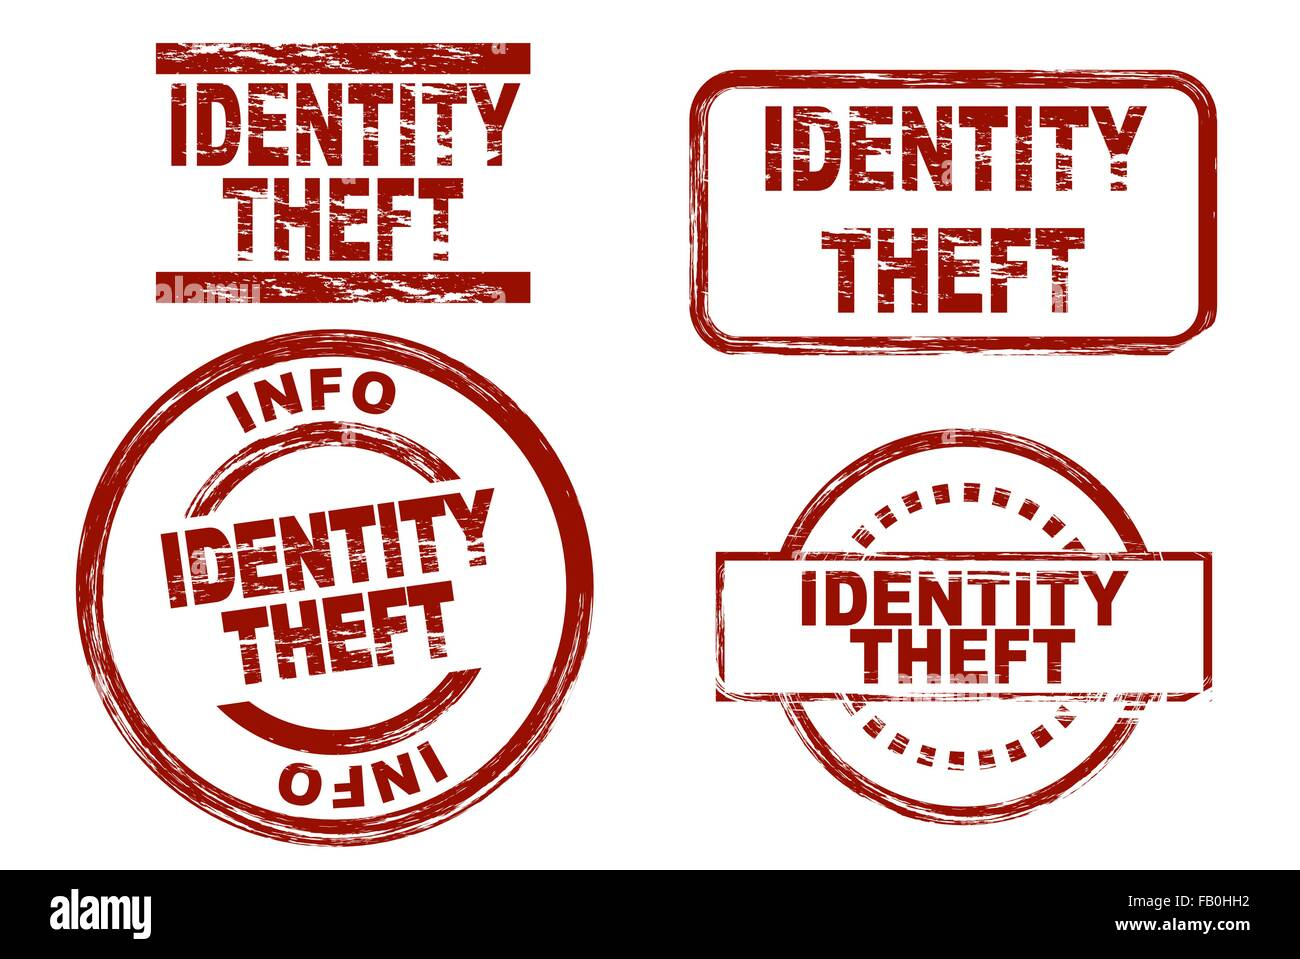 Set of stylized ink stamps showing the term identity theft. - Stock Vector